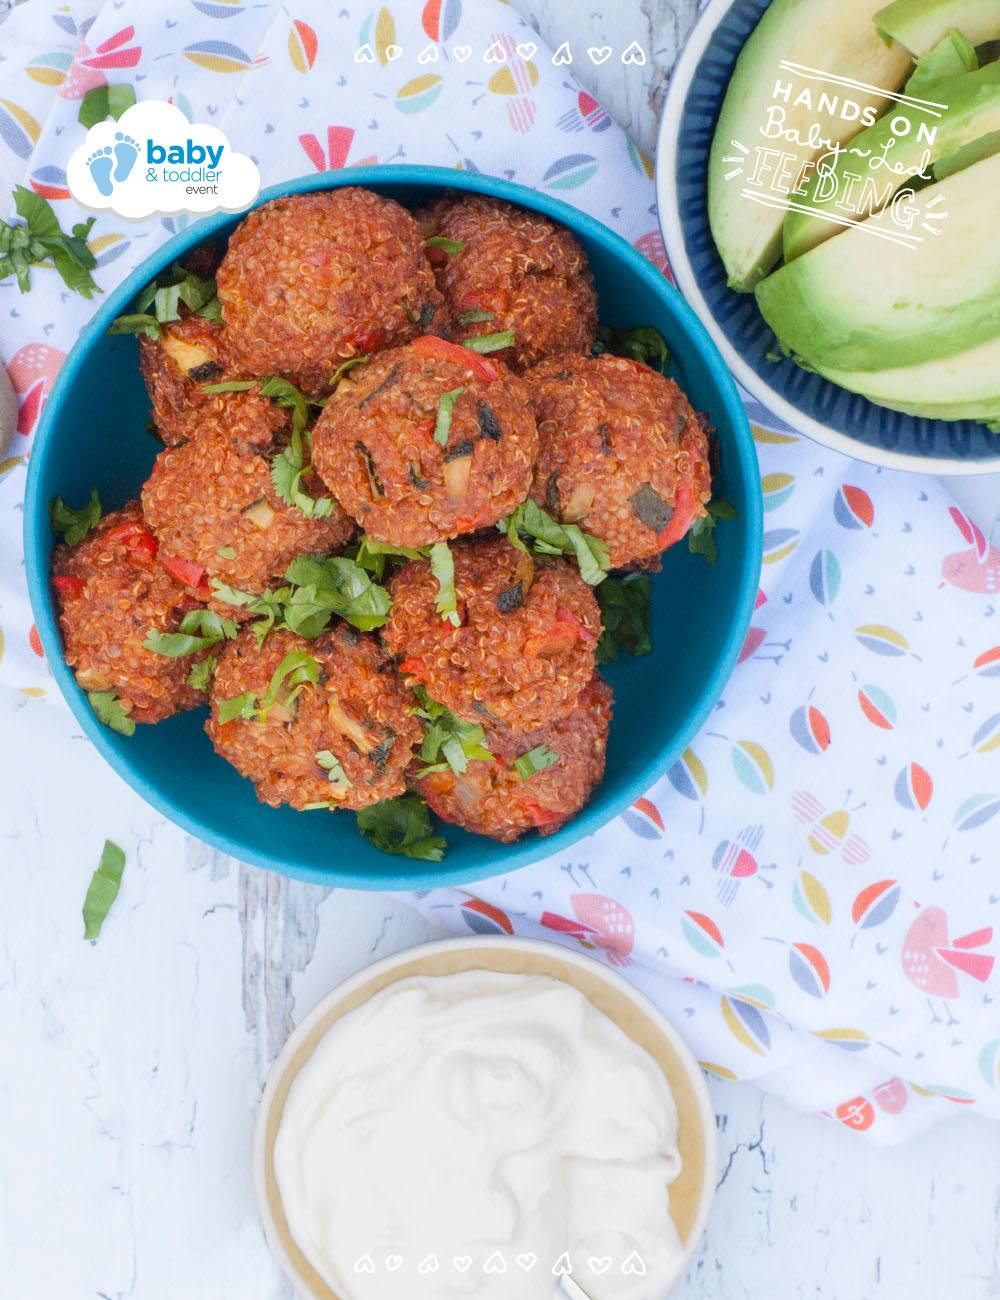 Mexican Quinoa Bites Baby Led Feeding. Recipe image for within recipe page. Homemade Baby Food Recipes perfect for little hands. Delicious baby weaning recipe from Aileen Cox Blundell author of The Baby Led Feeding Cookbook. healthy BLW recipe.